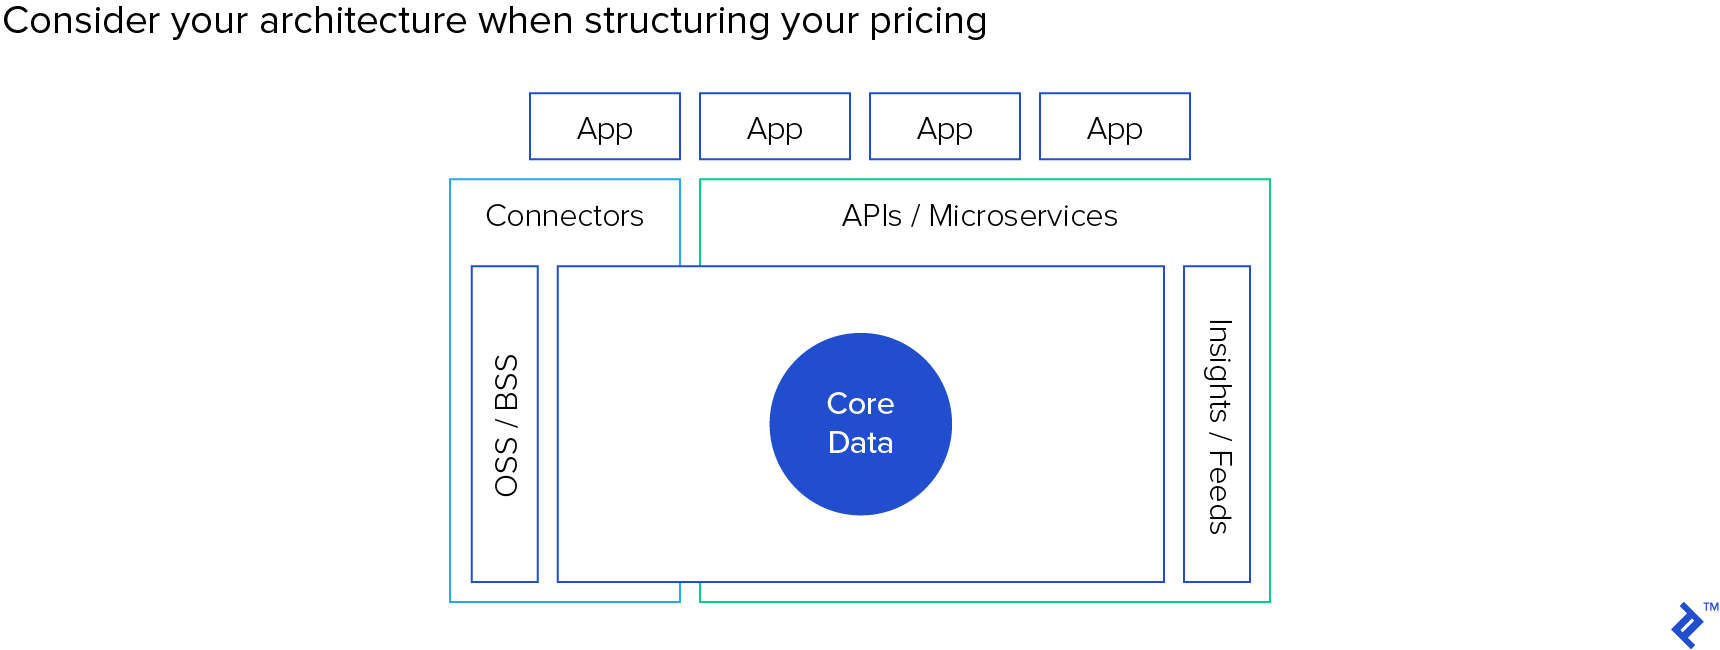 Consider your architecture when structuring your pricing